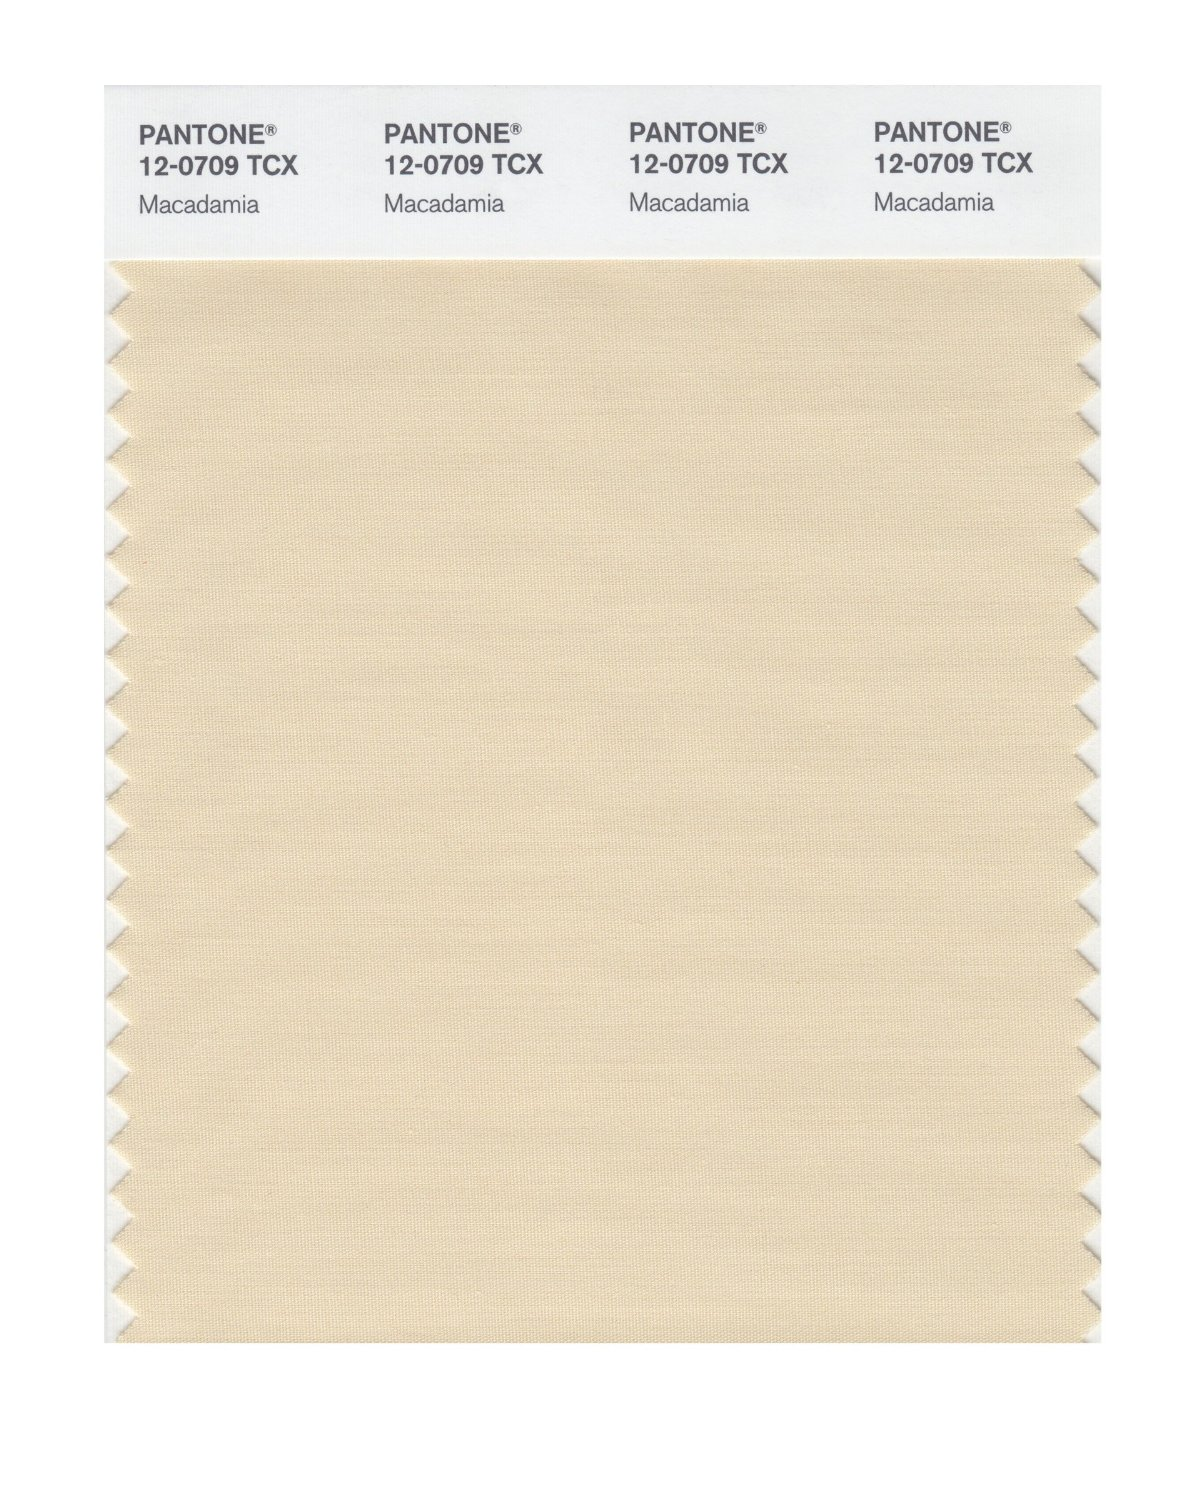 Pantone Smart Swatch 12-0709 Macadamia